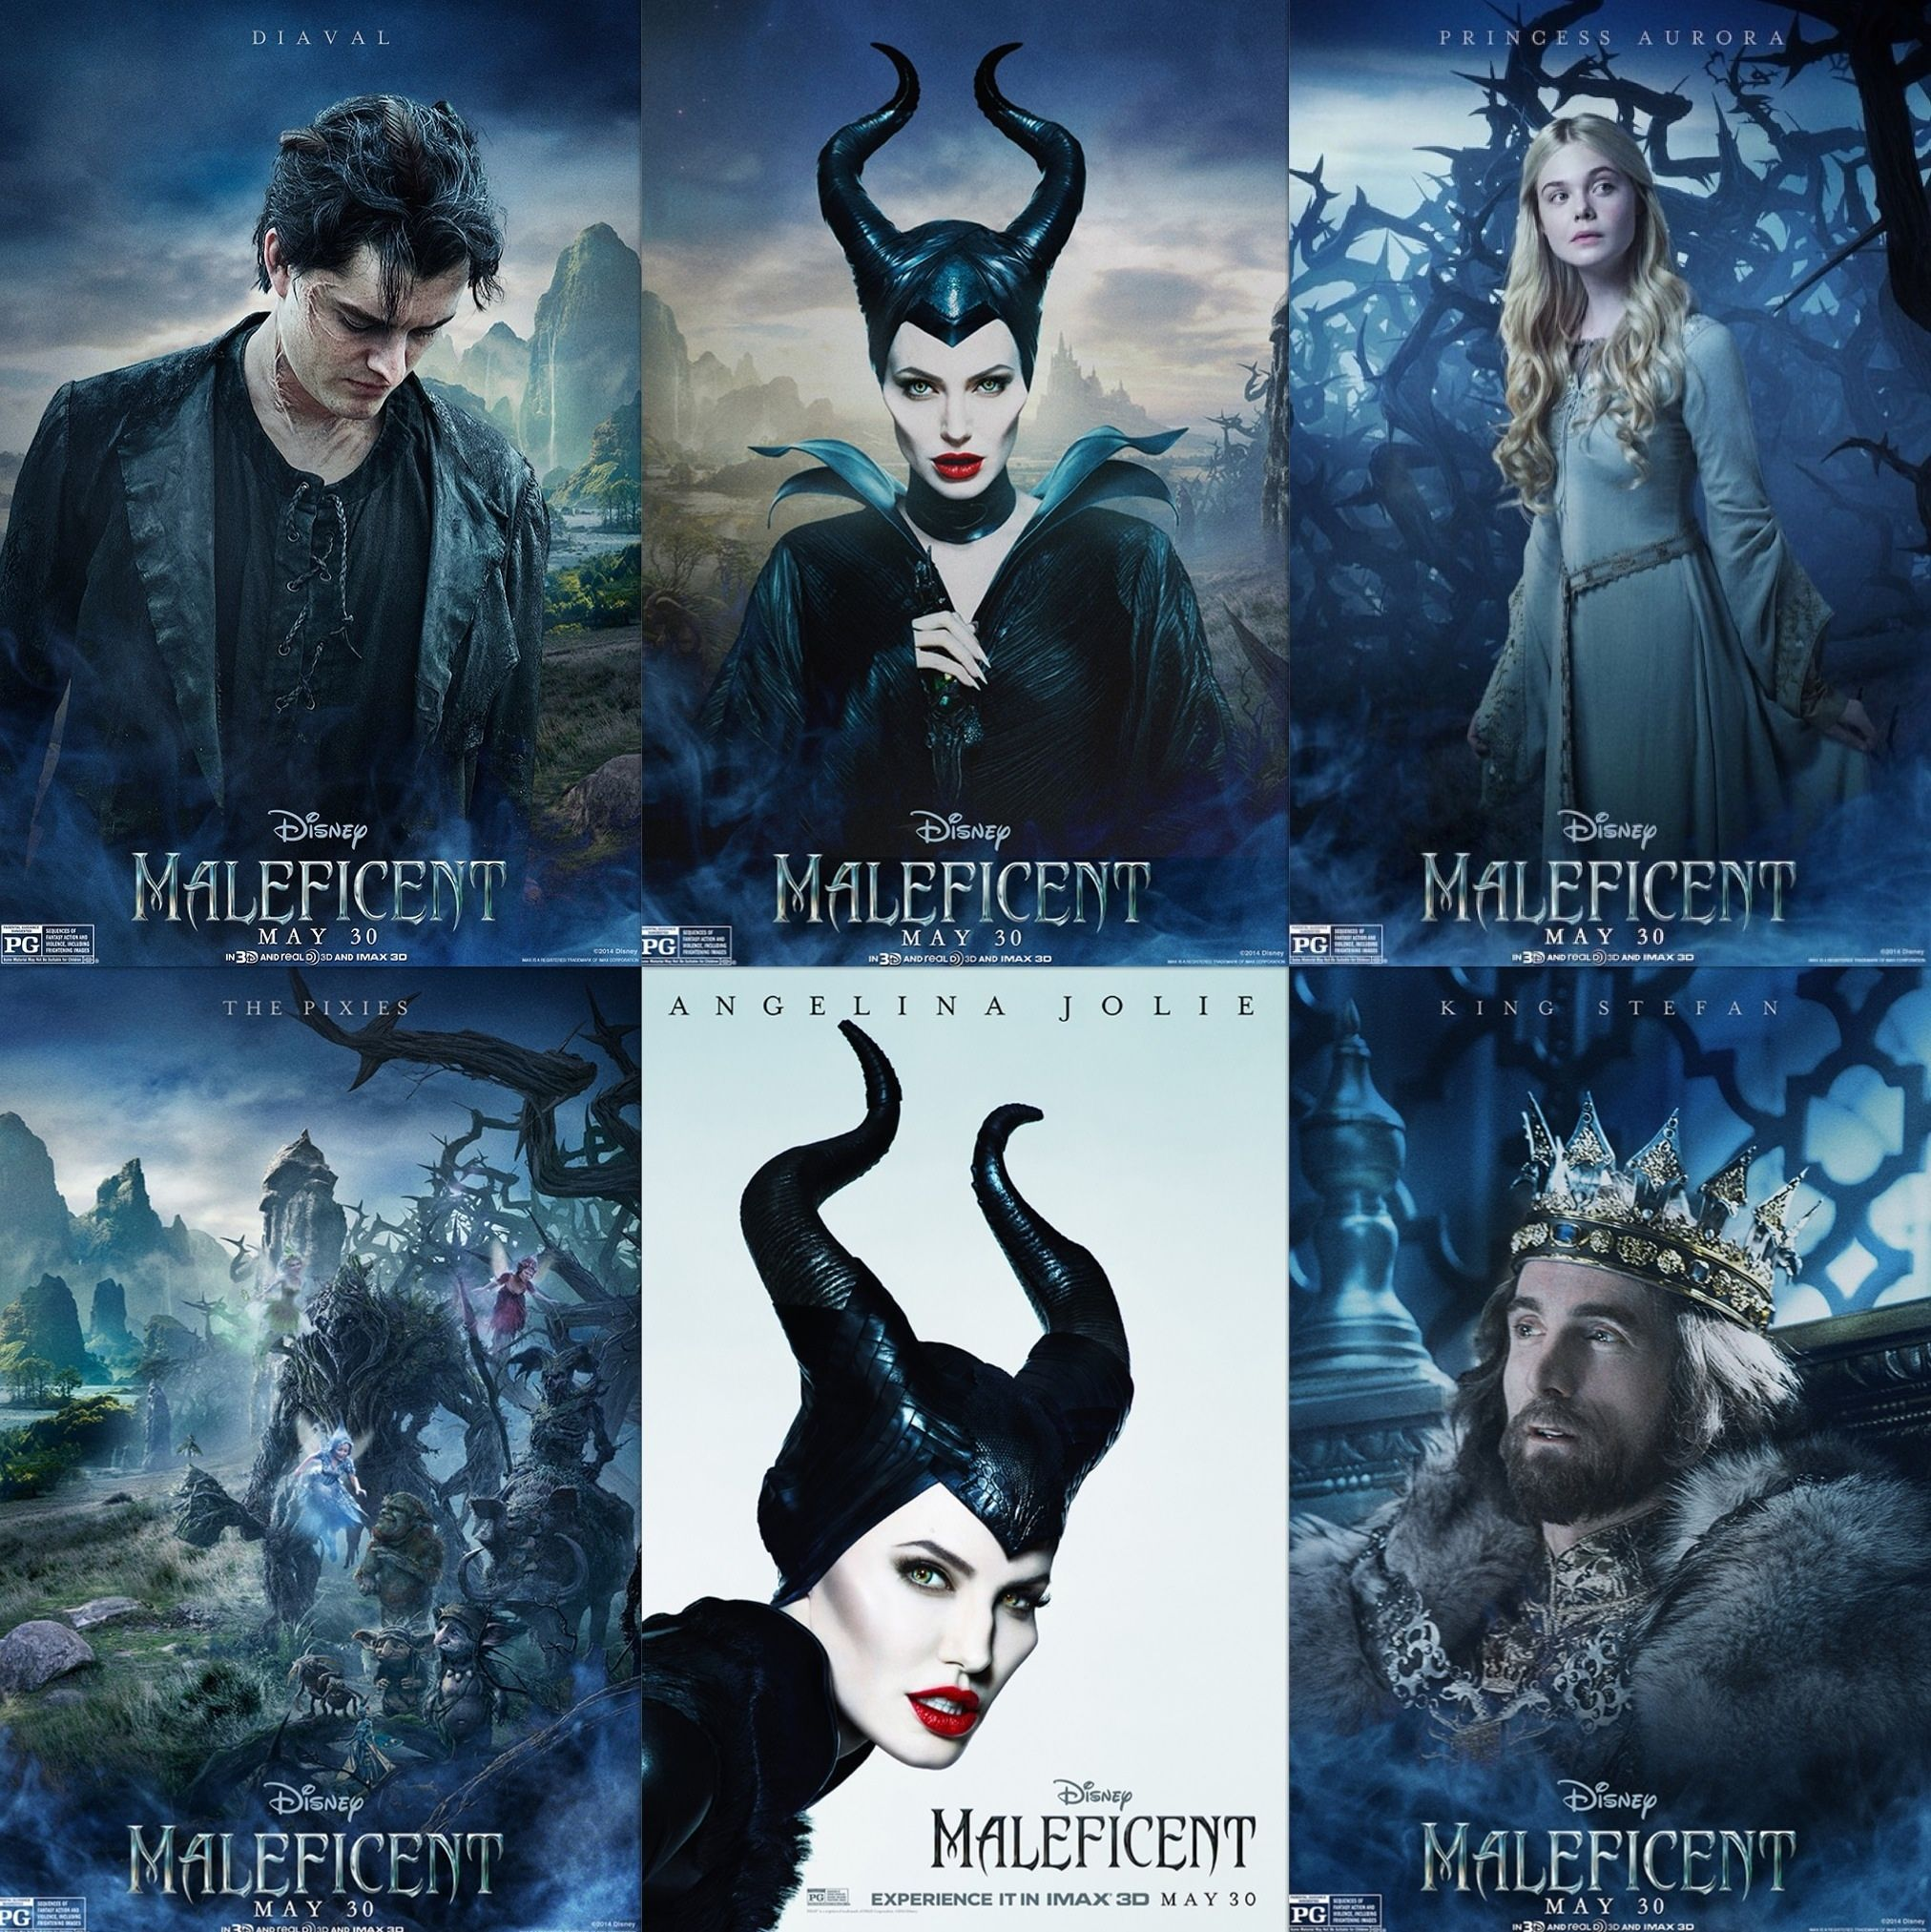 Maleficent Movie Cast Google Search Maleficent It